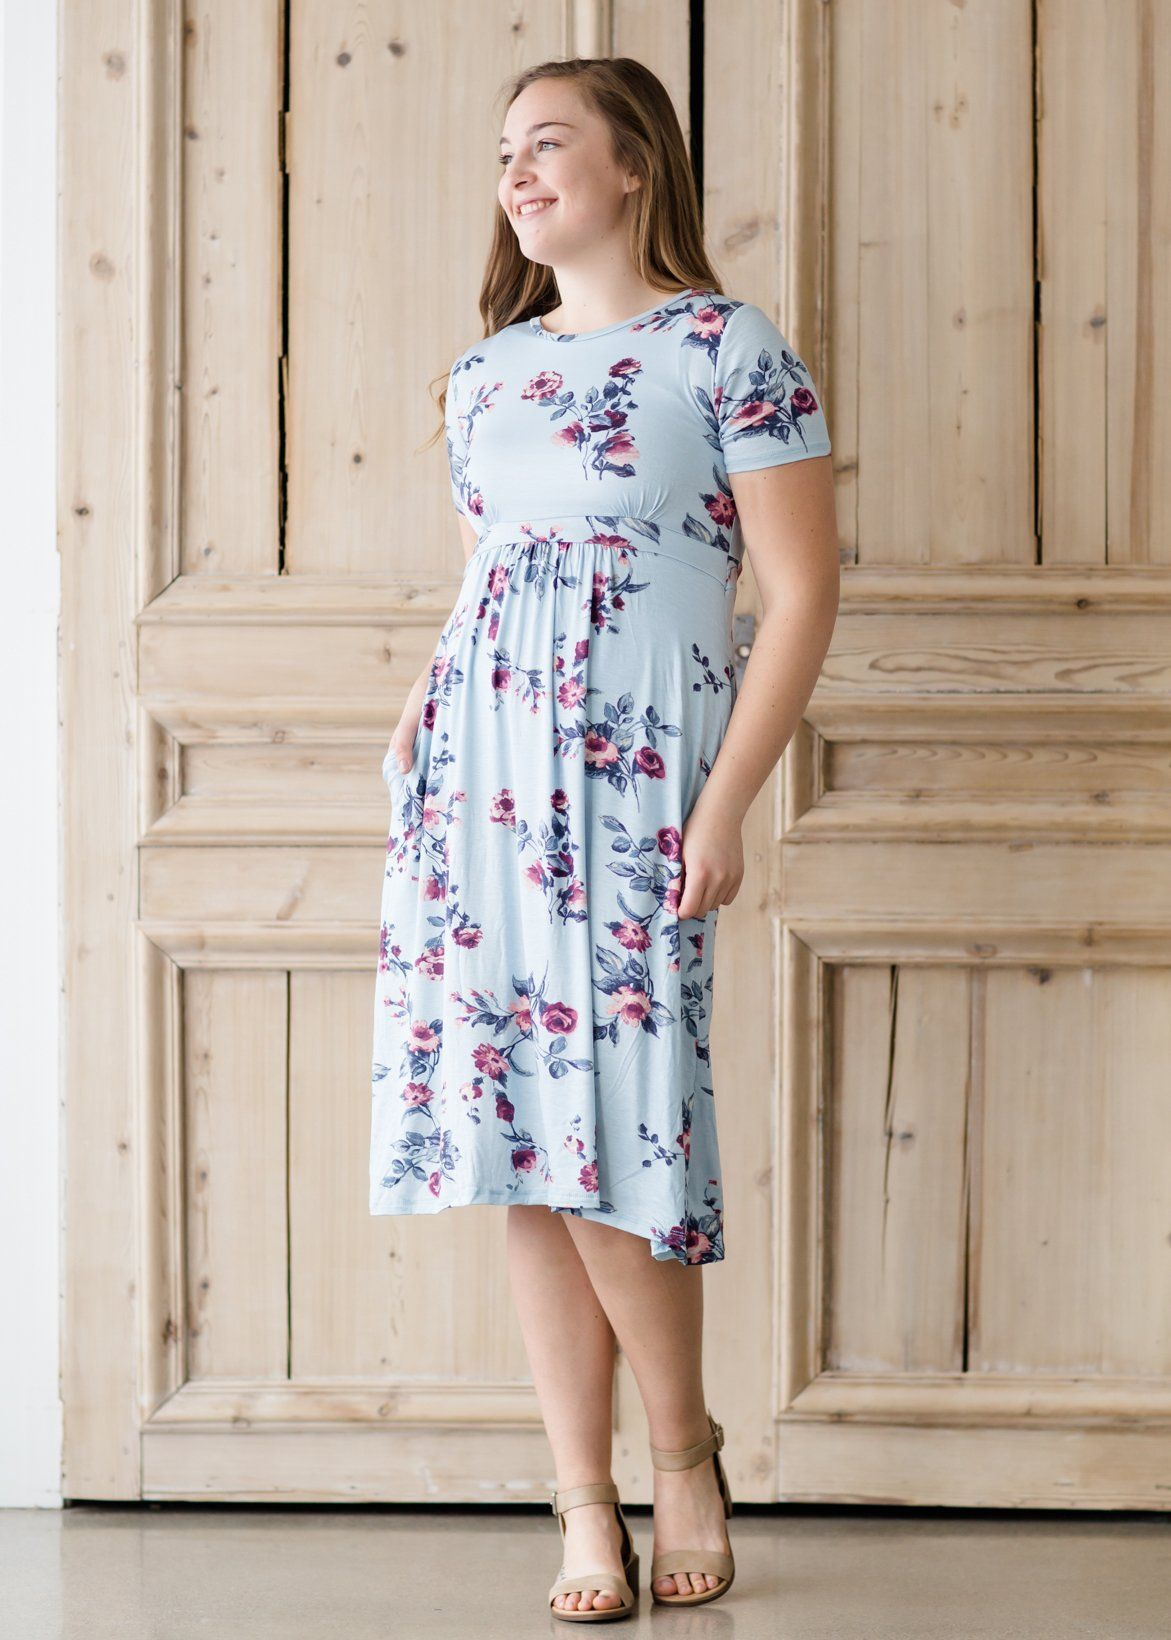 Modest Womens Floral Swing Midi Dress  Inherit Co Source by inheritco Source by WomenClothesFashionus dresses for church